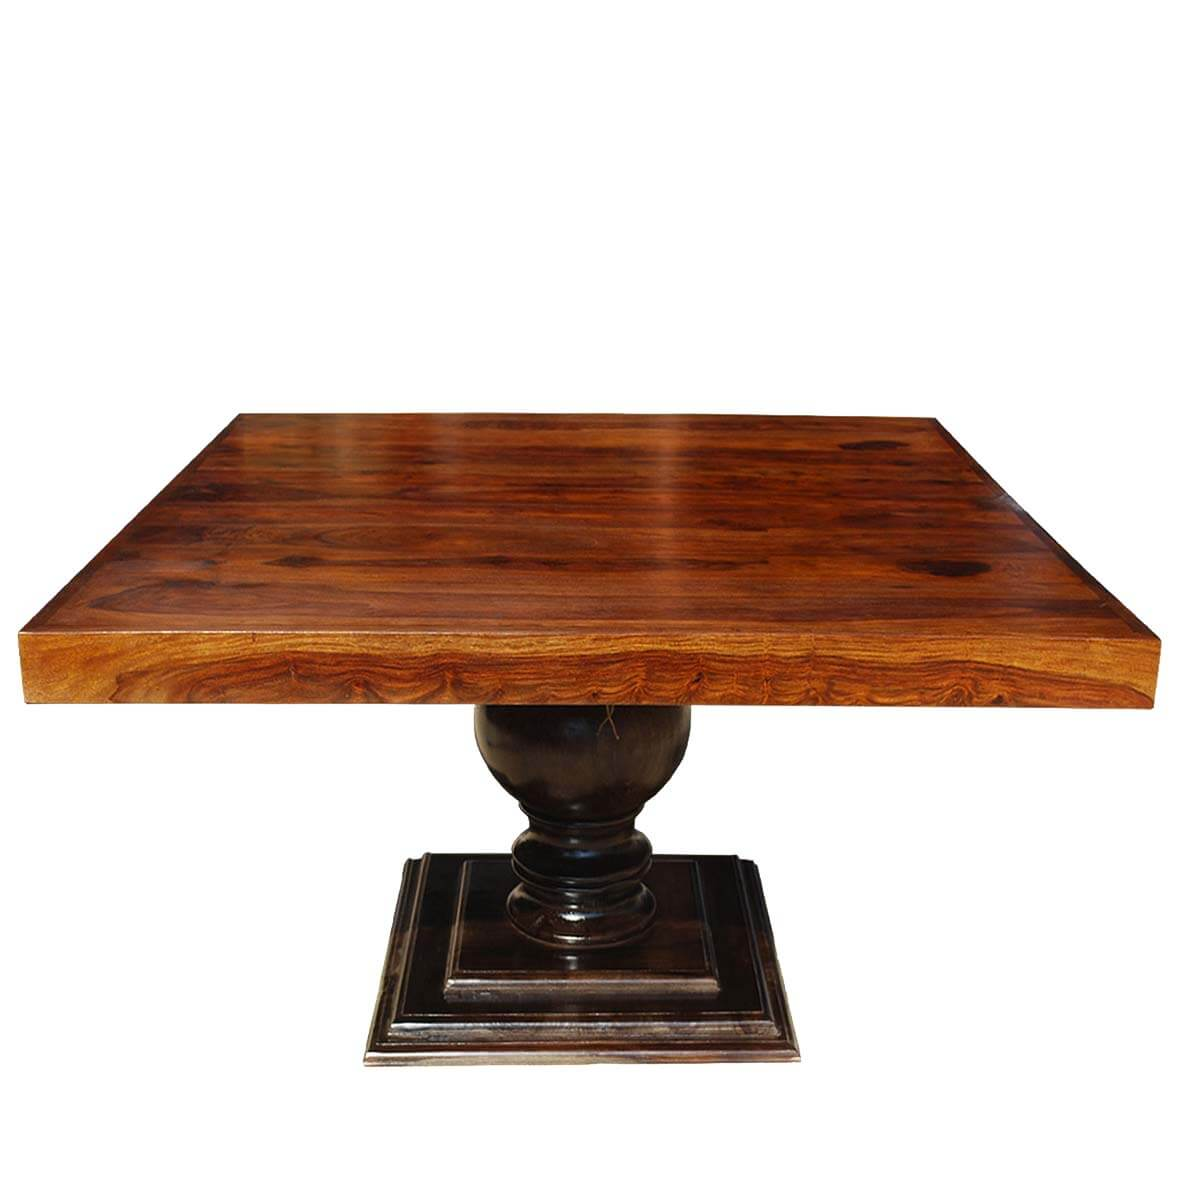 Dining Room Dining Tables 60 Square Solid Wood Fusion Pedestal Dining